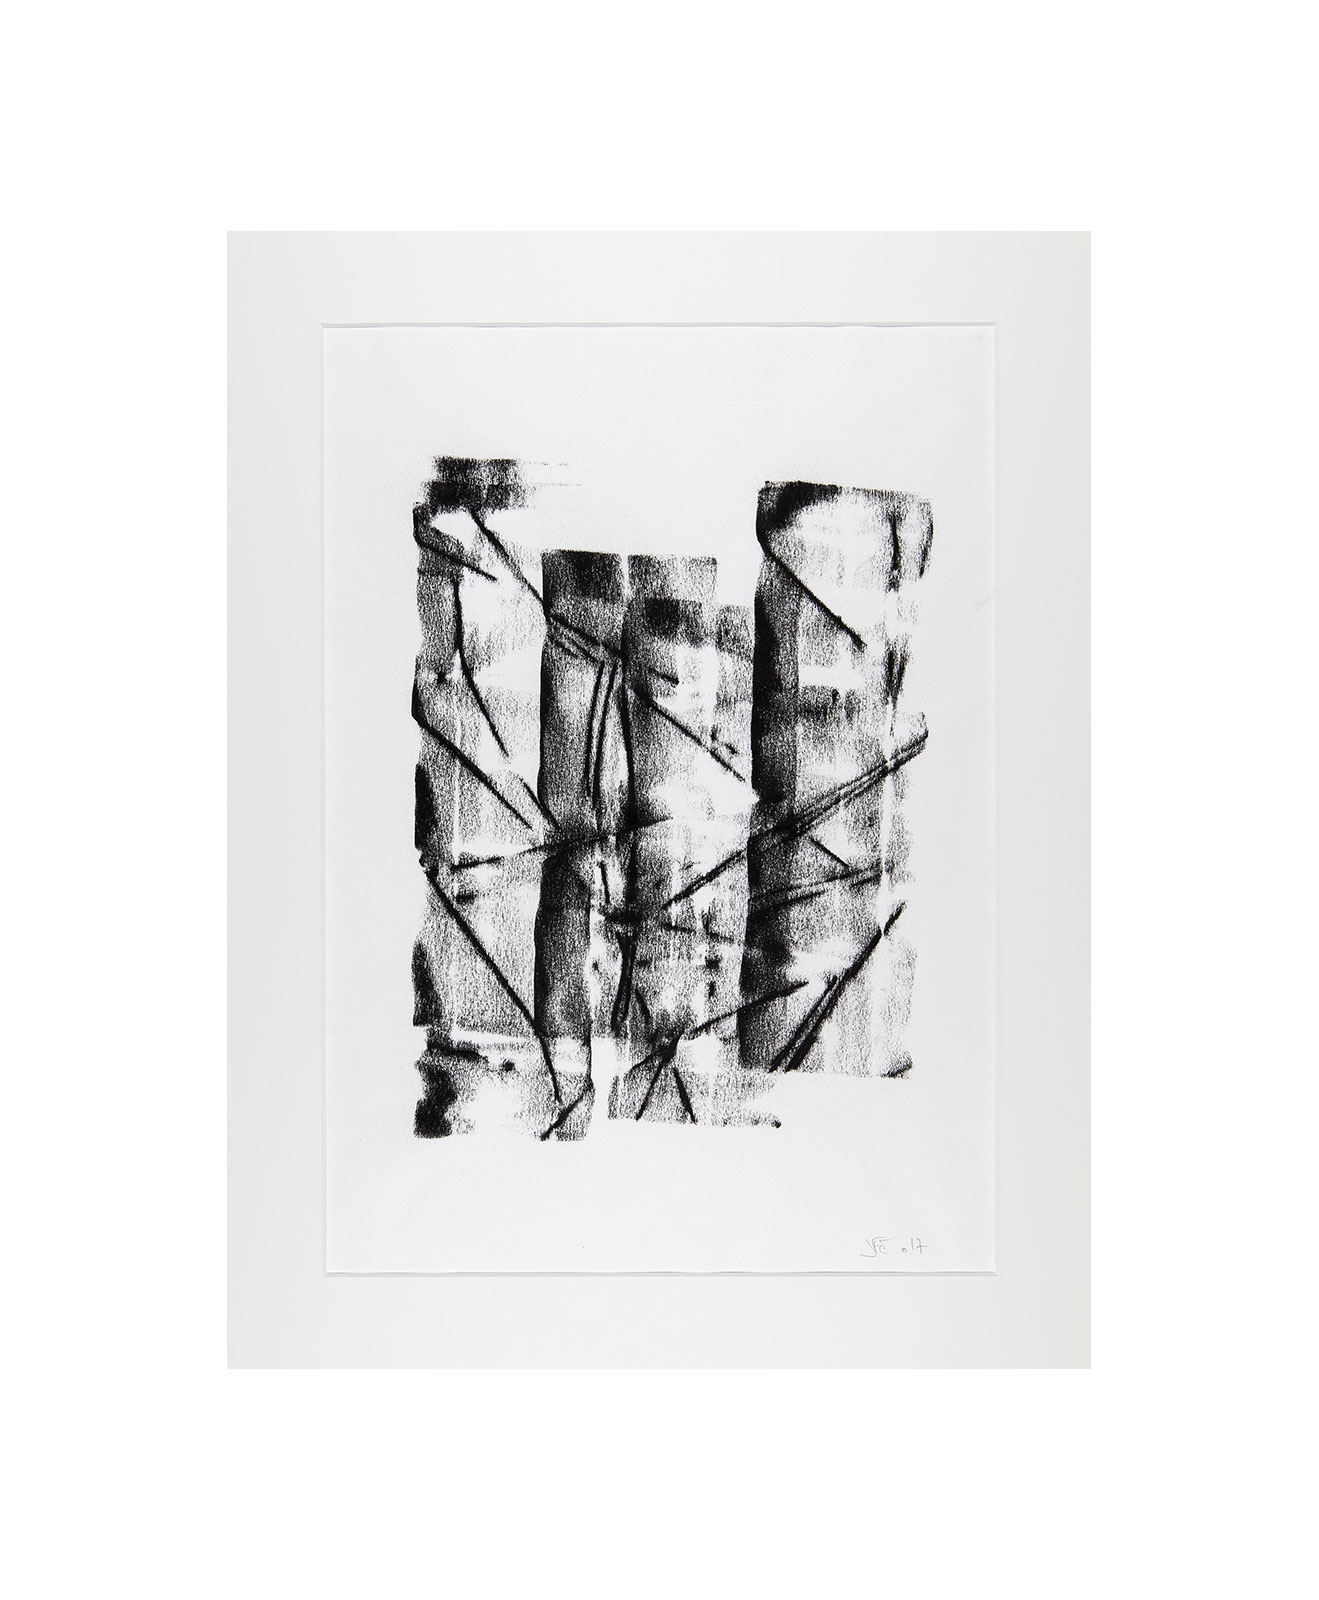 Cha 1.23, Charcoal on paper, black and white artwork, drawing, jf escande, contemporary art